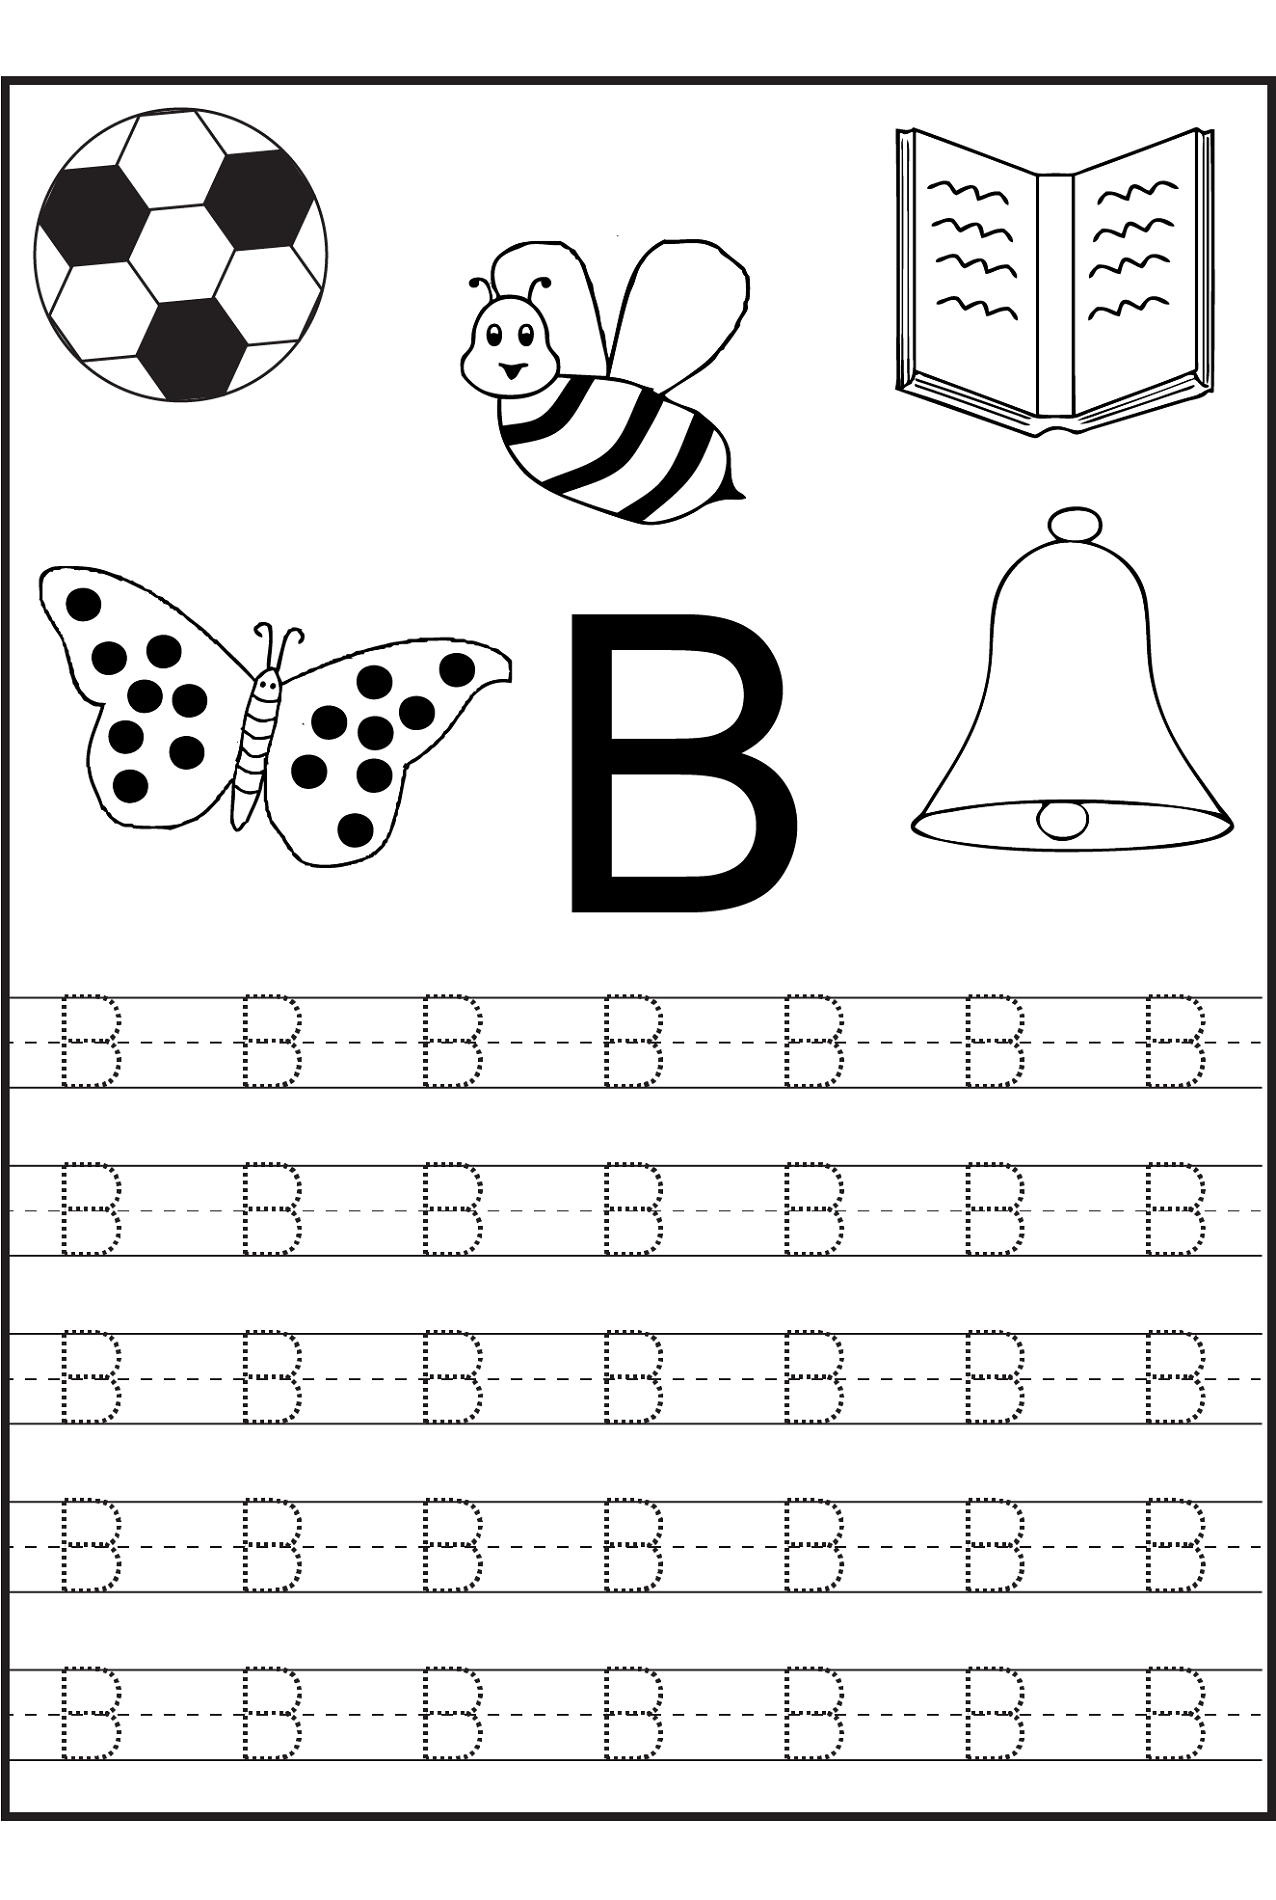 Letter B Worksheet - Tim&#39s Printables